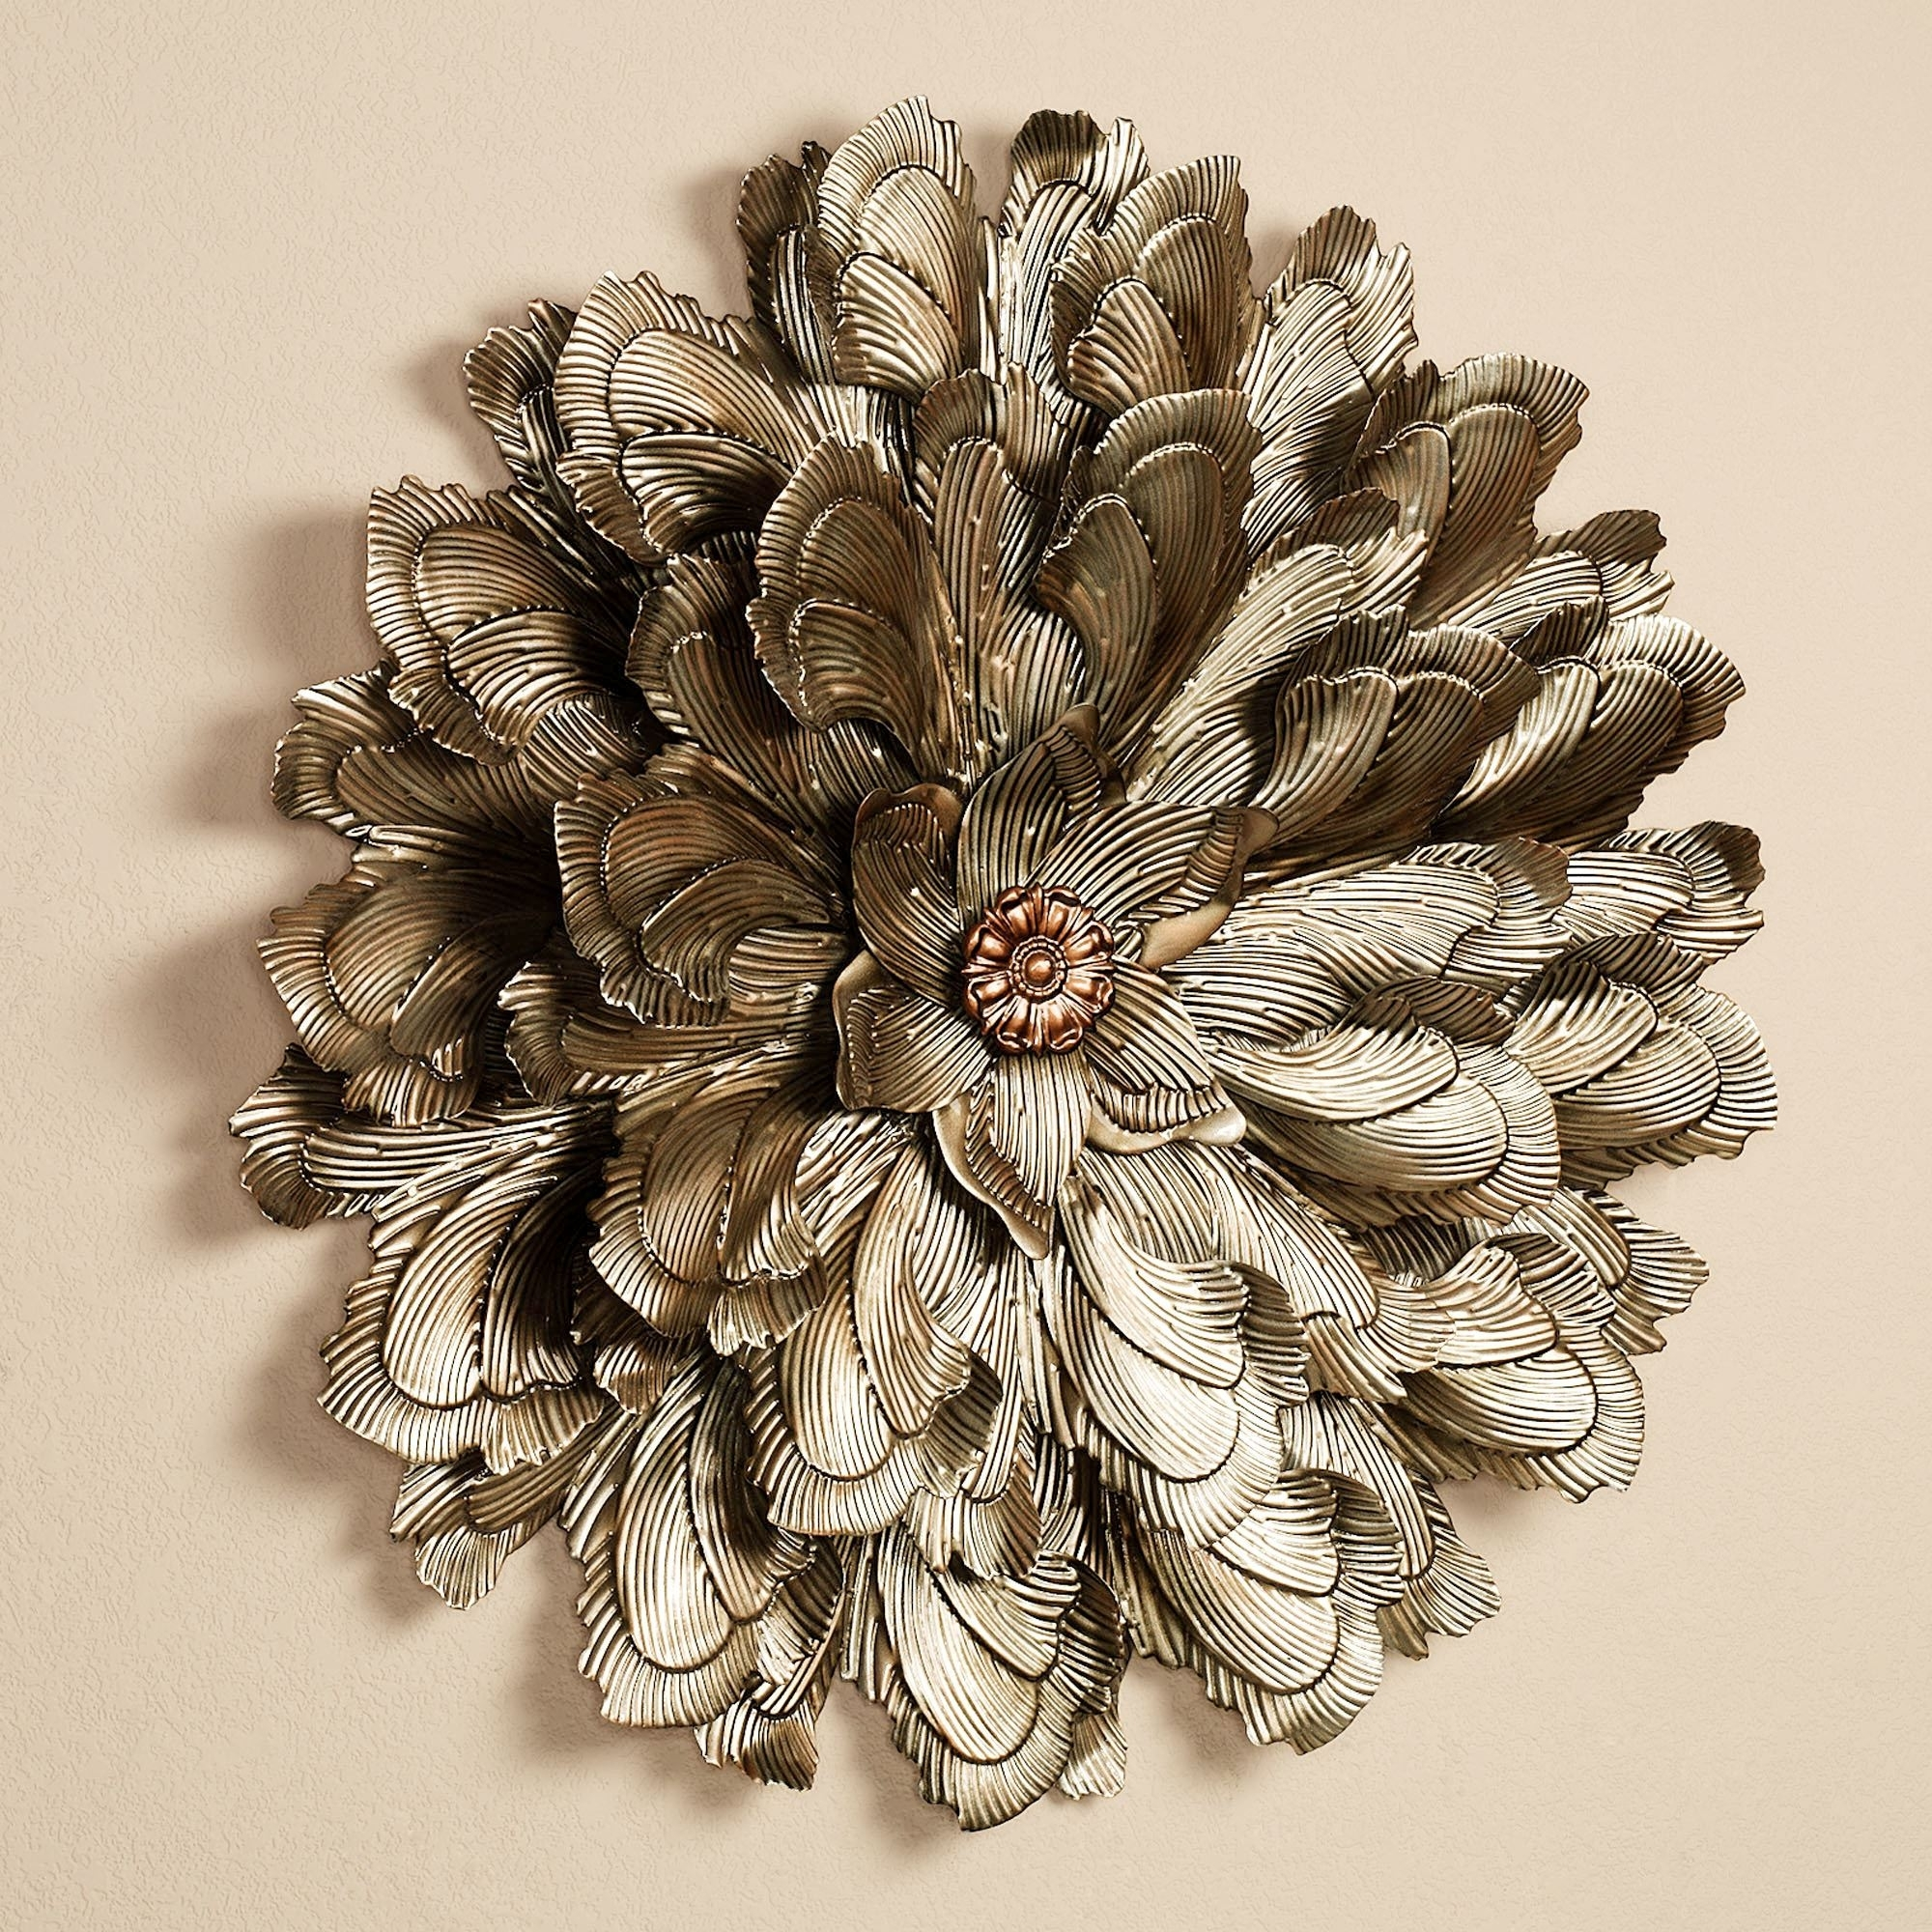 Metal Wall Art Flowers Big Metal Flower Wall Art – Amthuchanoi Intended For Latest Metal Flowers Wall Art (Gallery 8 of 20)